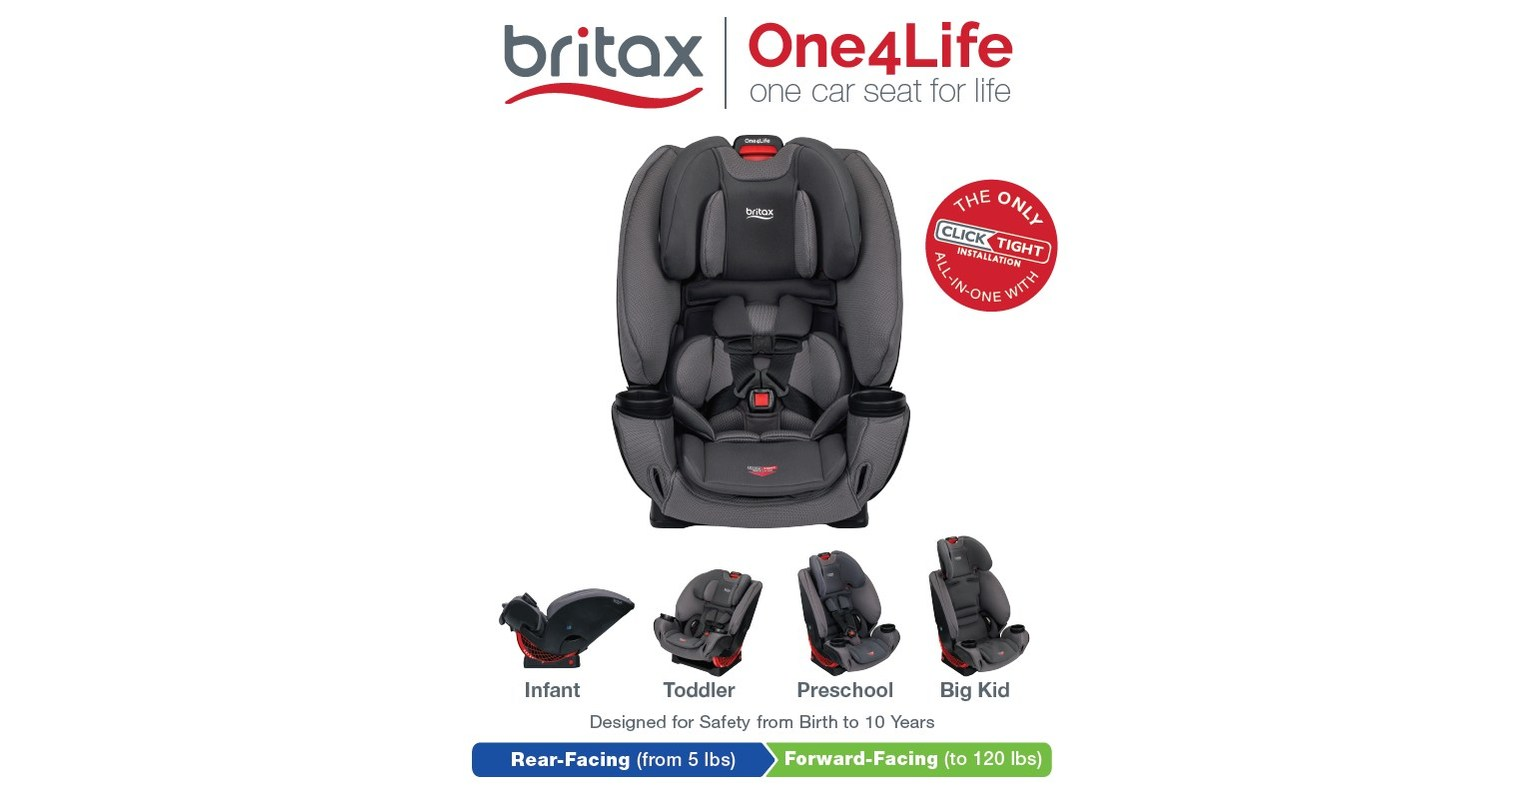 Miraculous Introducing One4Life The First All In One Car Seat Thats Pdpeps Interior Chair Design Pdpepsorg